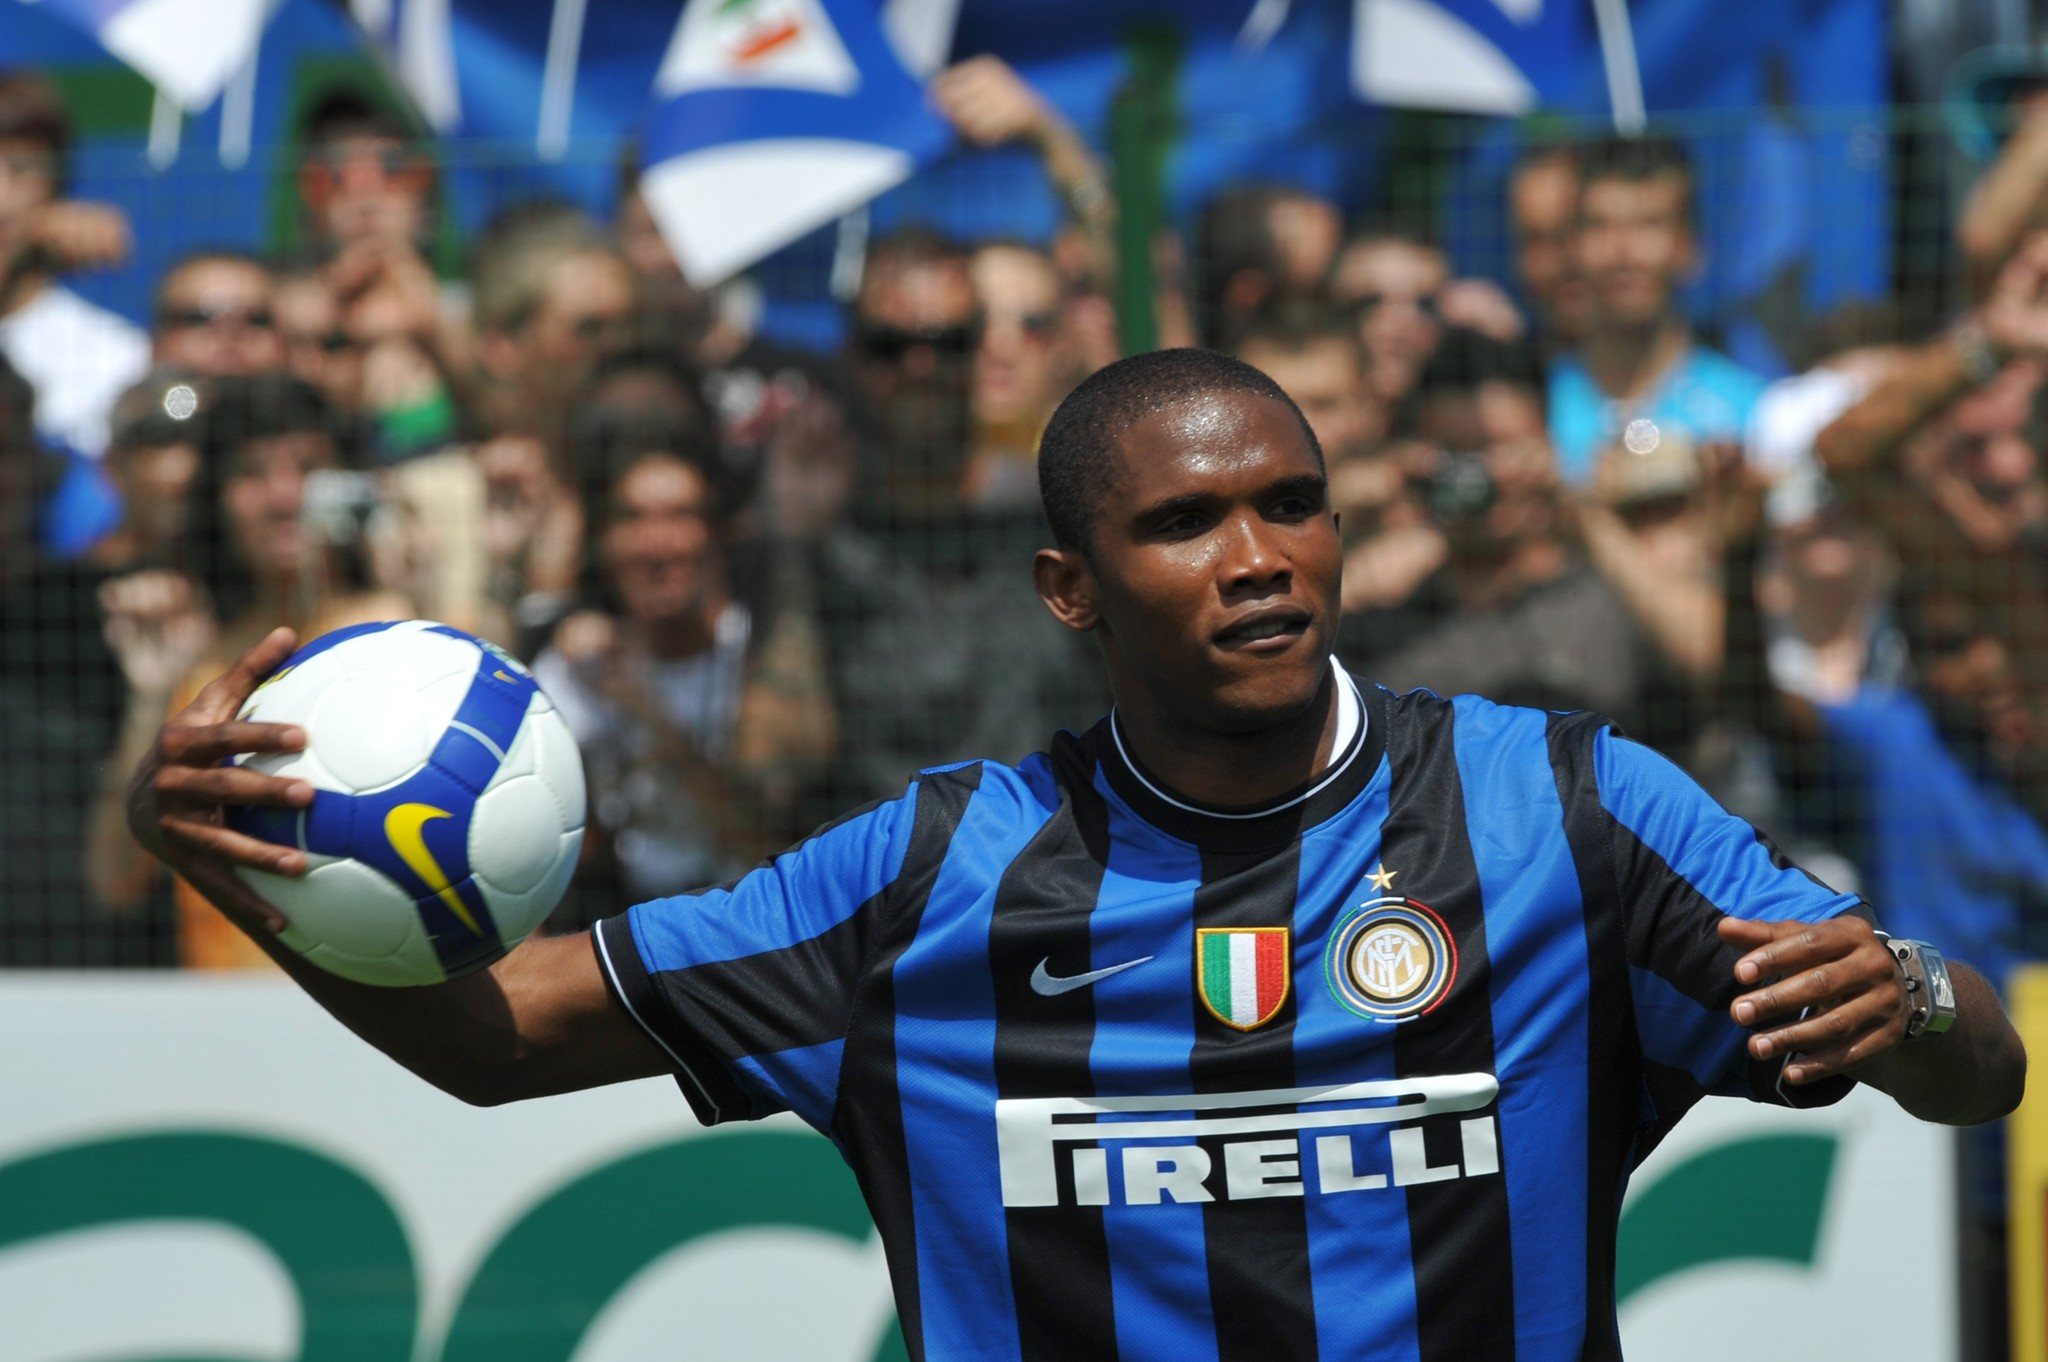 Cameroon striker <HIT>Samuel</HIT> Etoo holds a ball during his presentation at Inter Milan training centre in Appiano Gentile on July 28, 2009 . He is part of a swap deal that will see Sweden forward Zlatan Ibrahimovic head to Catalonia while Inter will also pocket 50 million euros and take Belarus winger Alexander Hleb on loan for a year. AFP PHOTO / GIUSEPPE CACACE